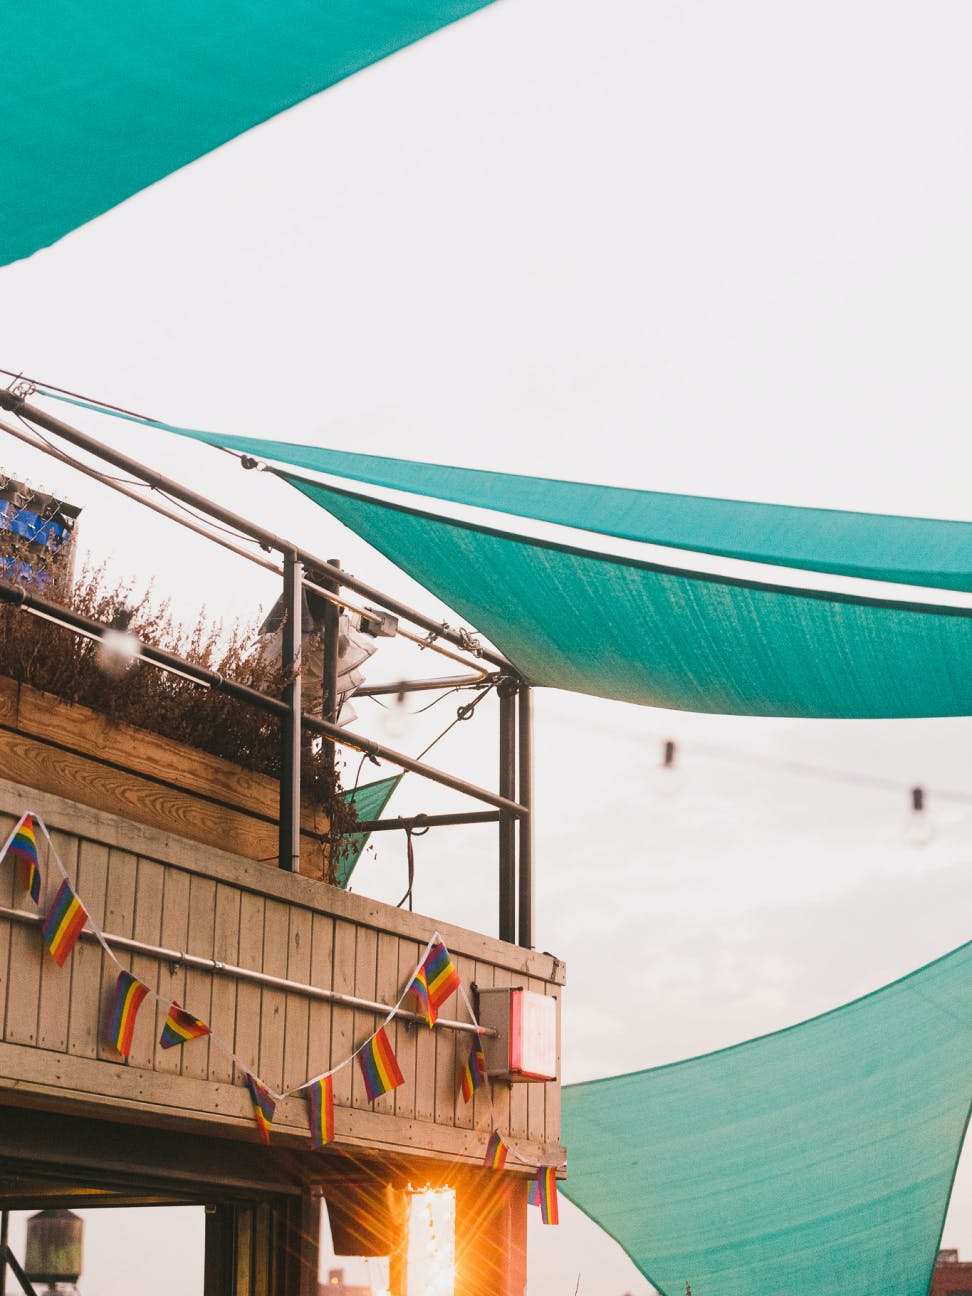 Shade sails on the rooftop